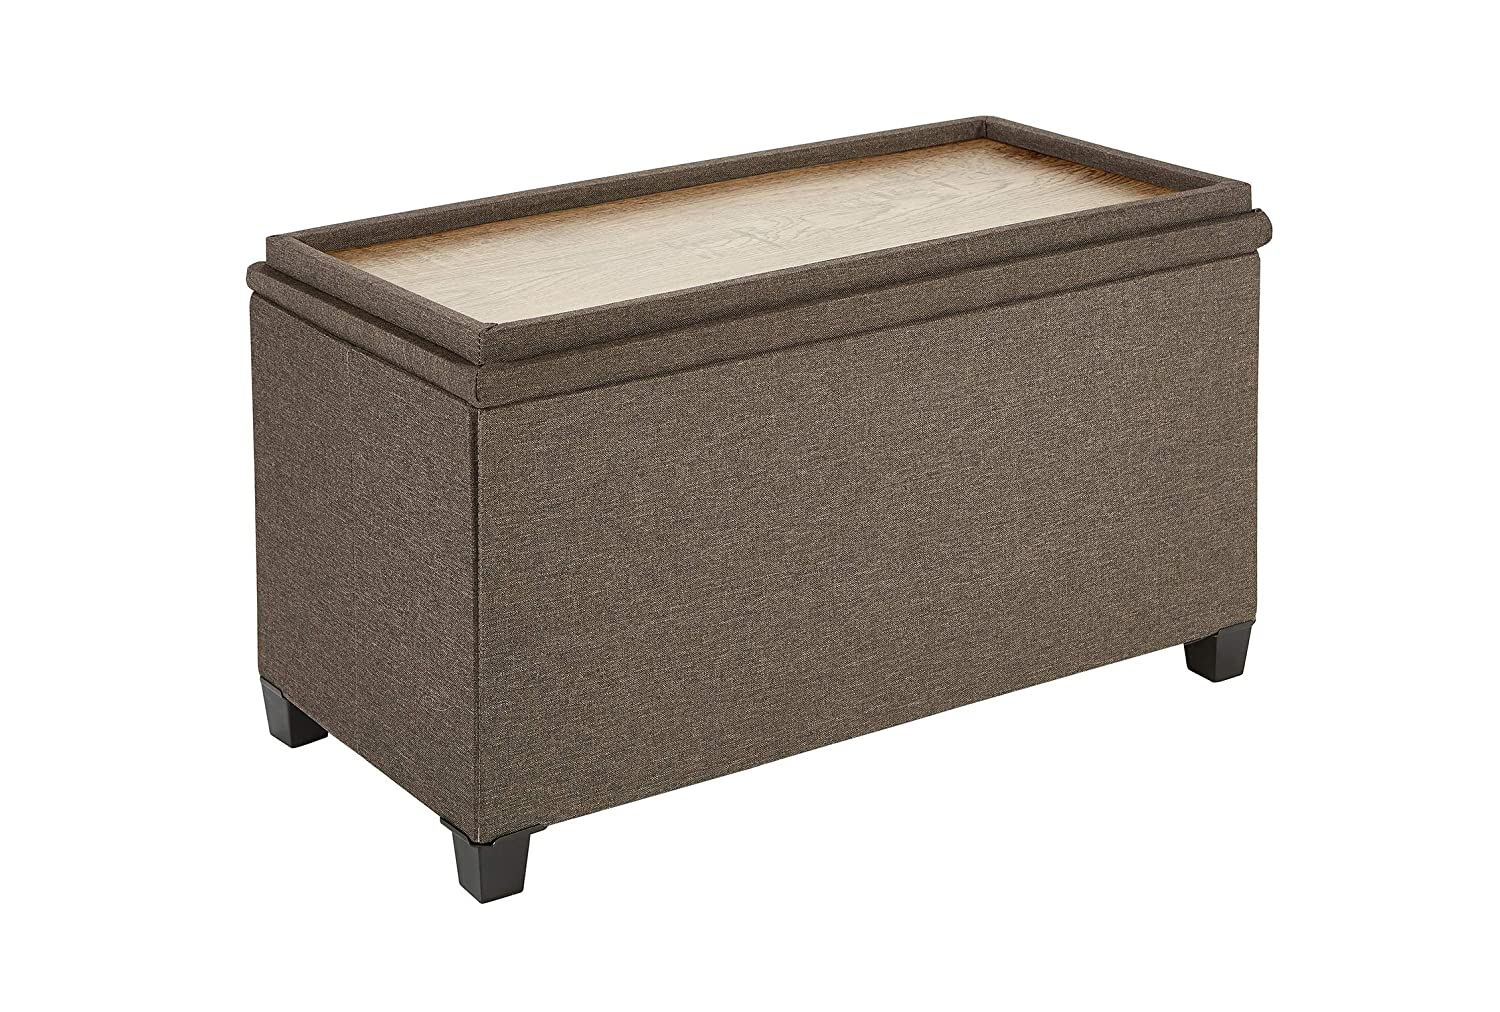 Fresh Home Elements 250089-002 Tray Coffee Table Ottoman with Storage Brown